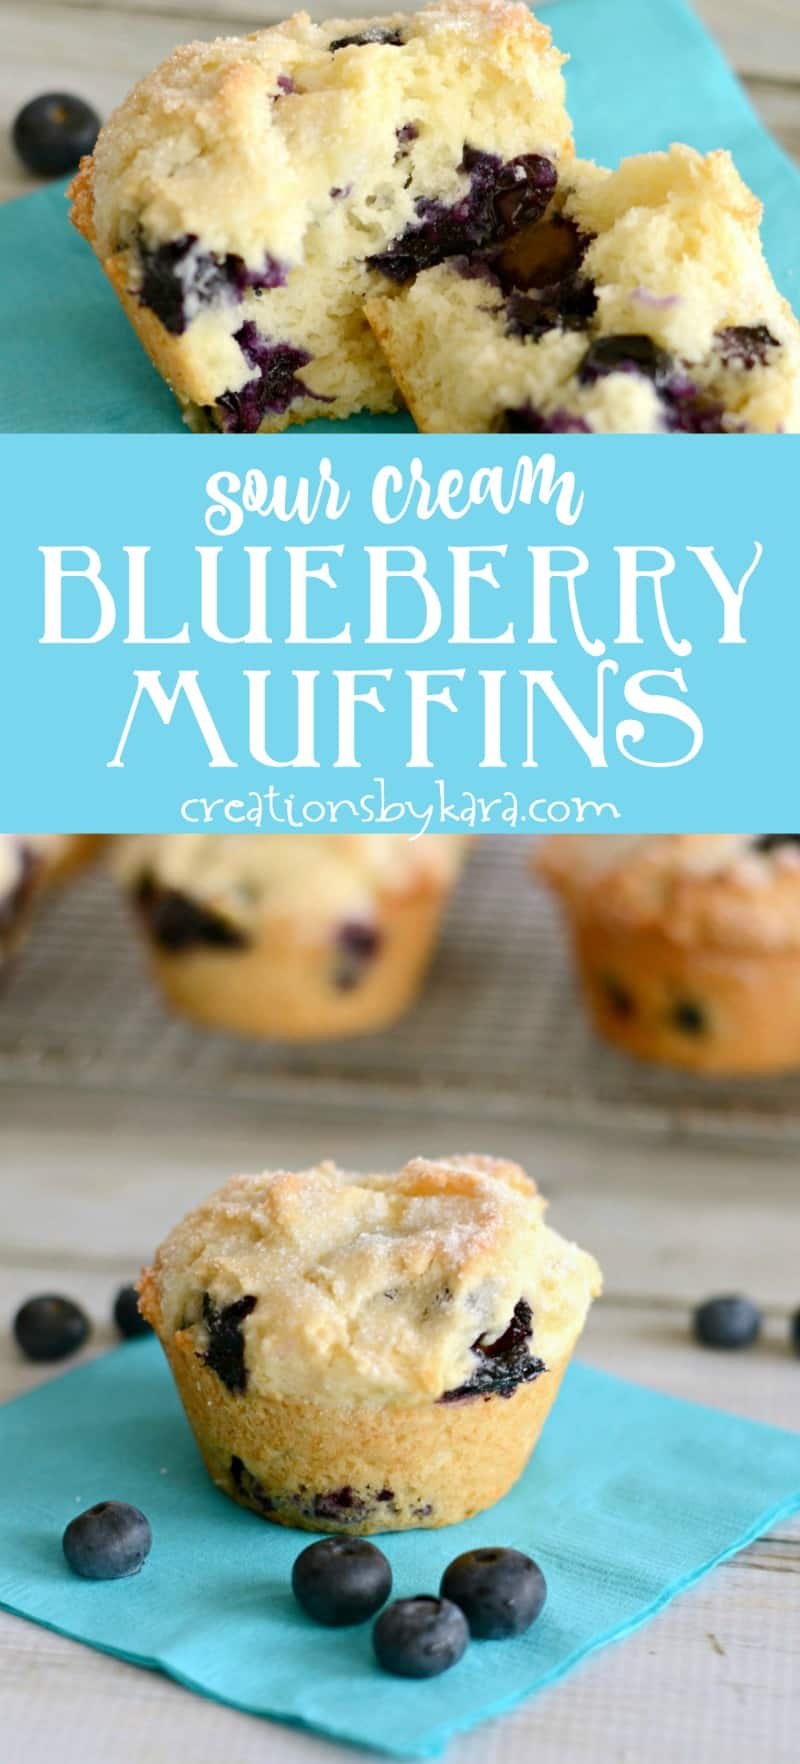 Sour Cream Blueberry Muffins . . . sour cream makes these muffins extra soft, and adds a nice rich flavor. A must try blueberry muffin recipe. #blueberrymuffin #blueberry #muffins #breakfastrecipe